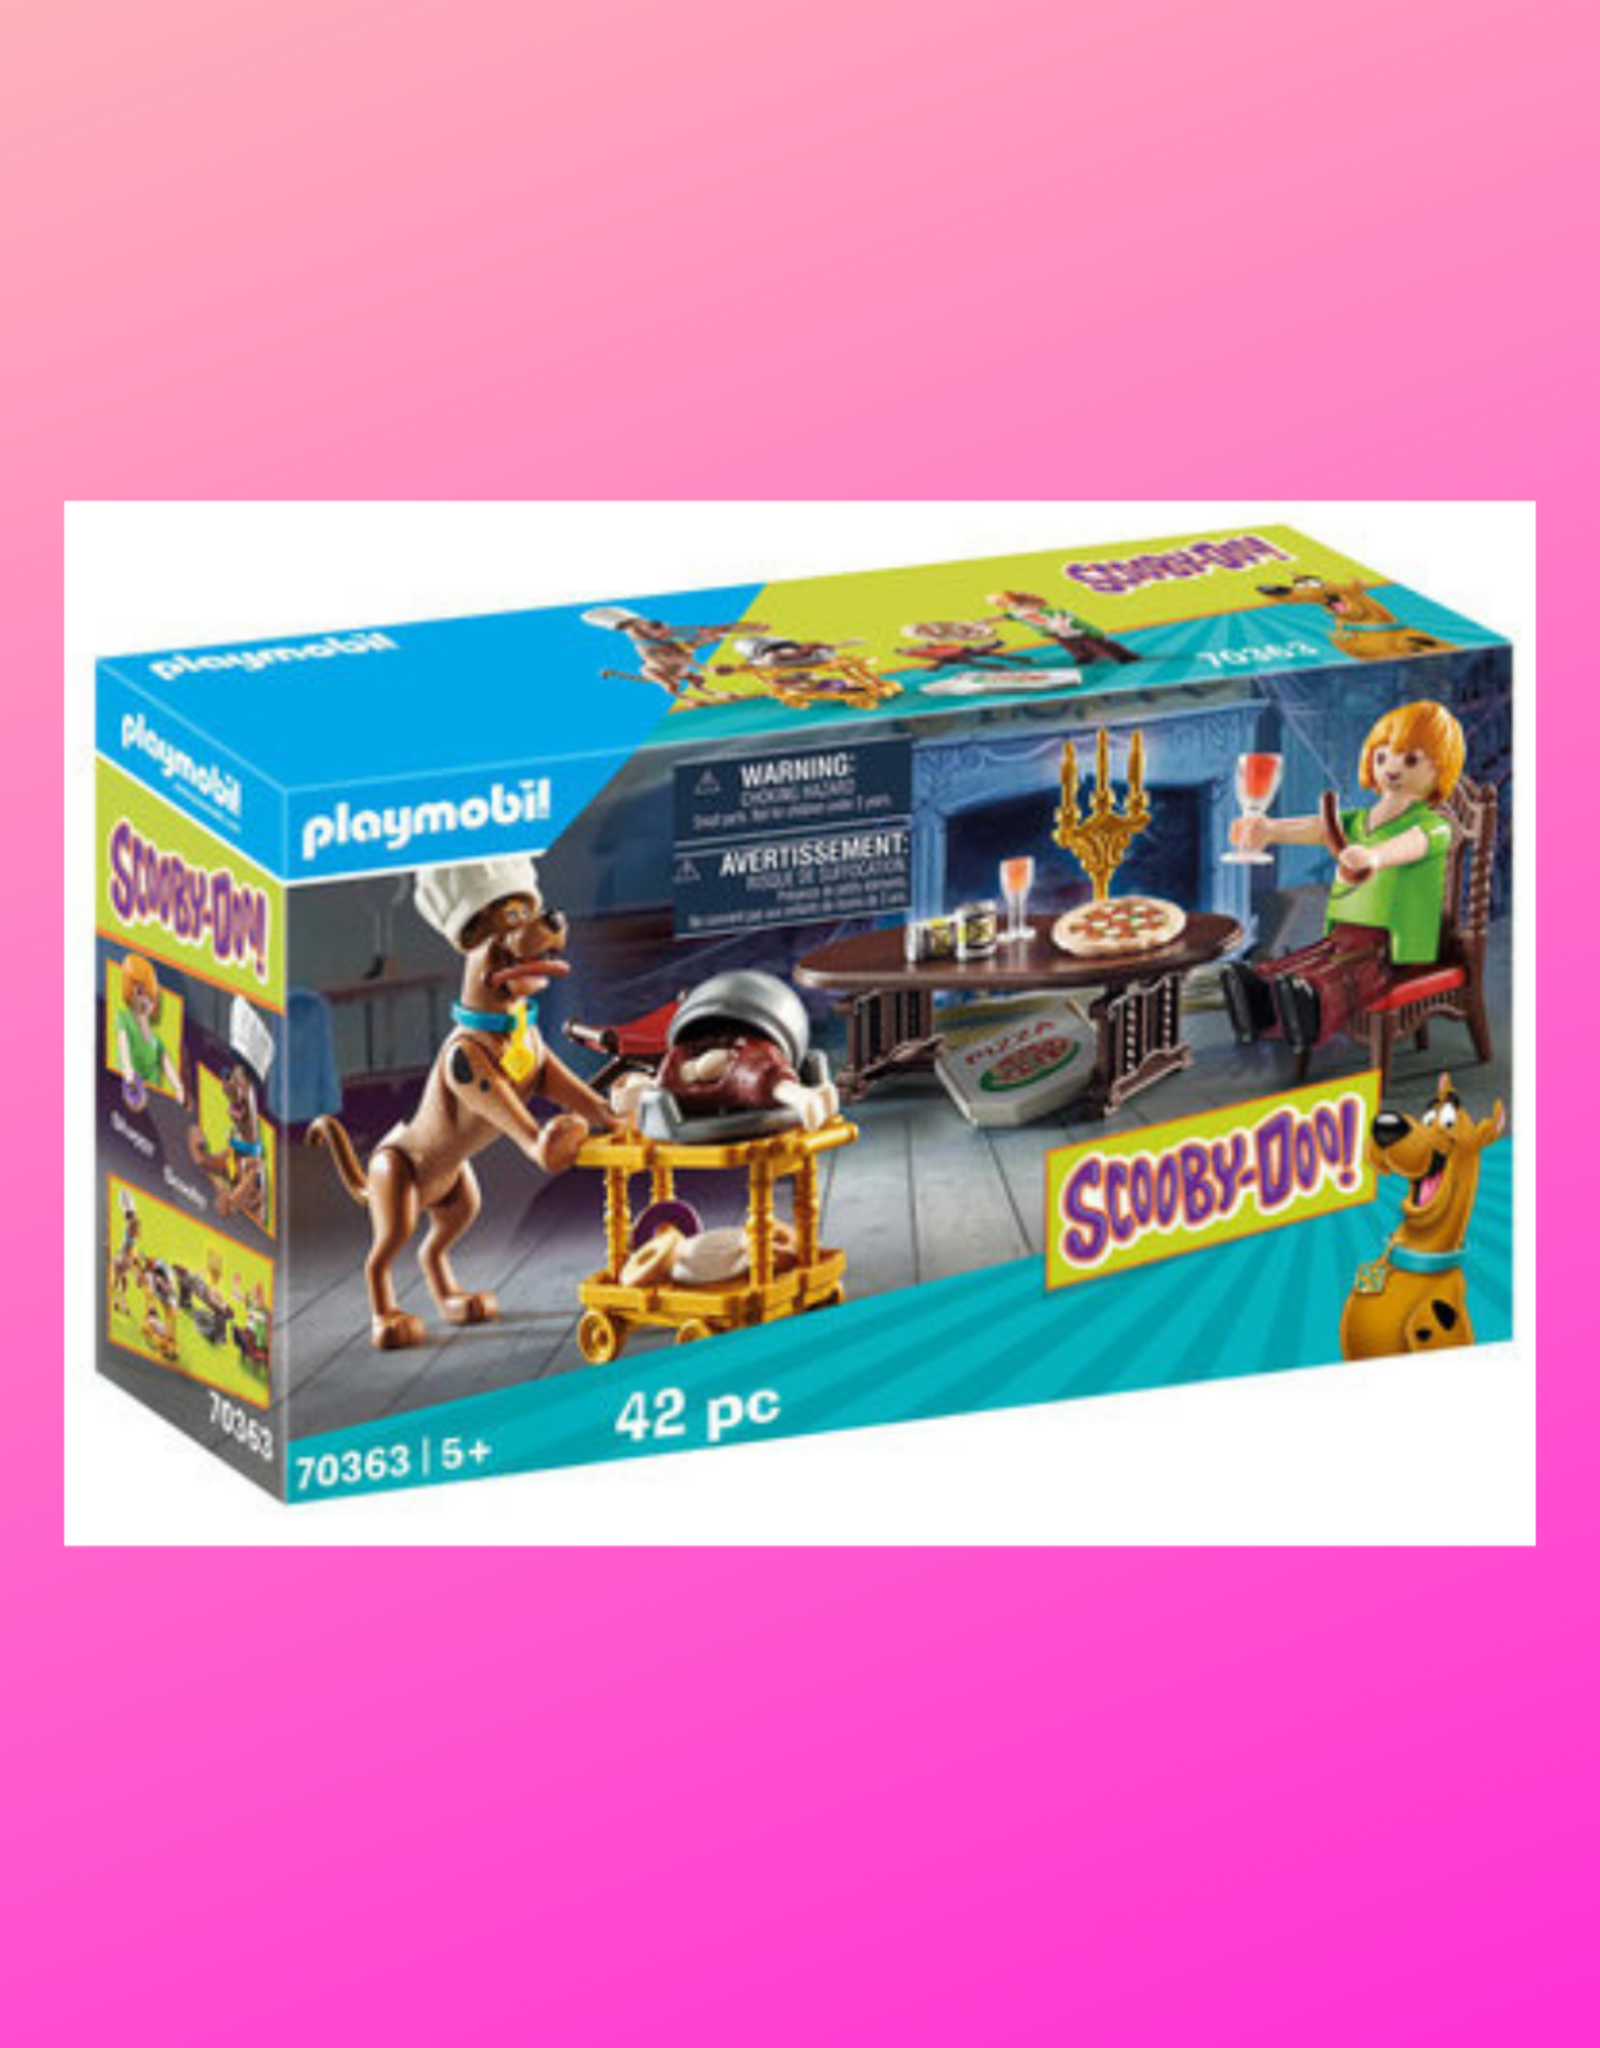 PLAYMOBIL SCOOBY DOO DINNER WITH SHAGGY